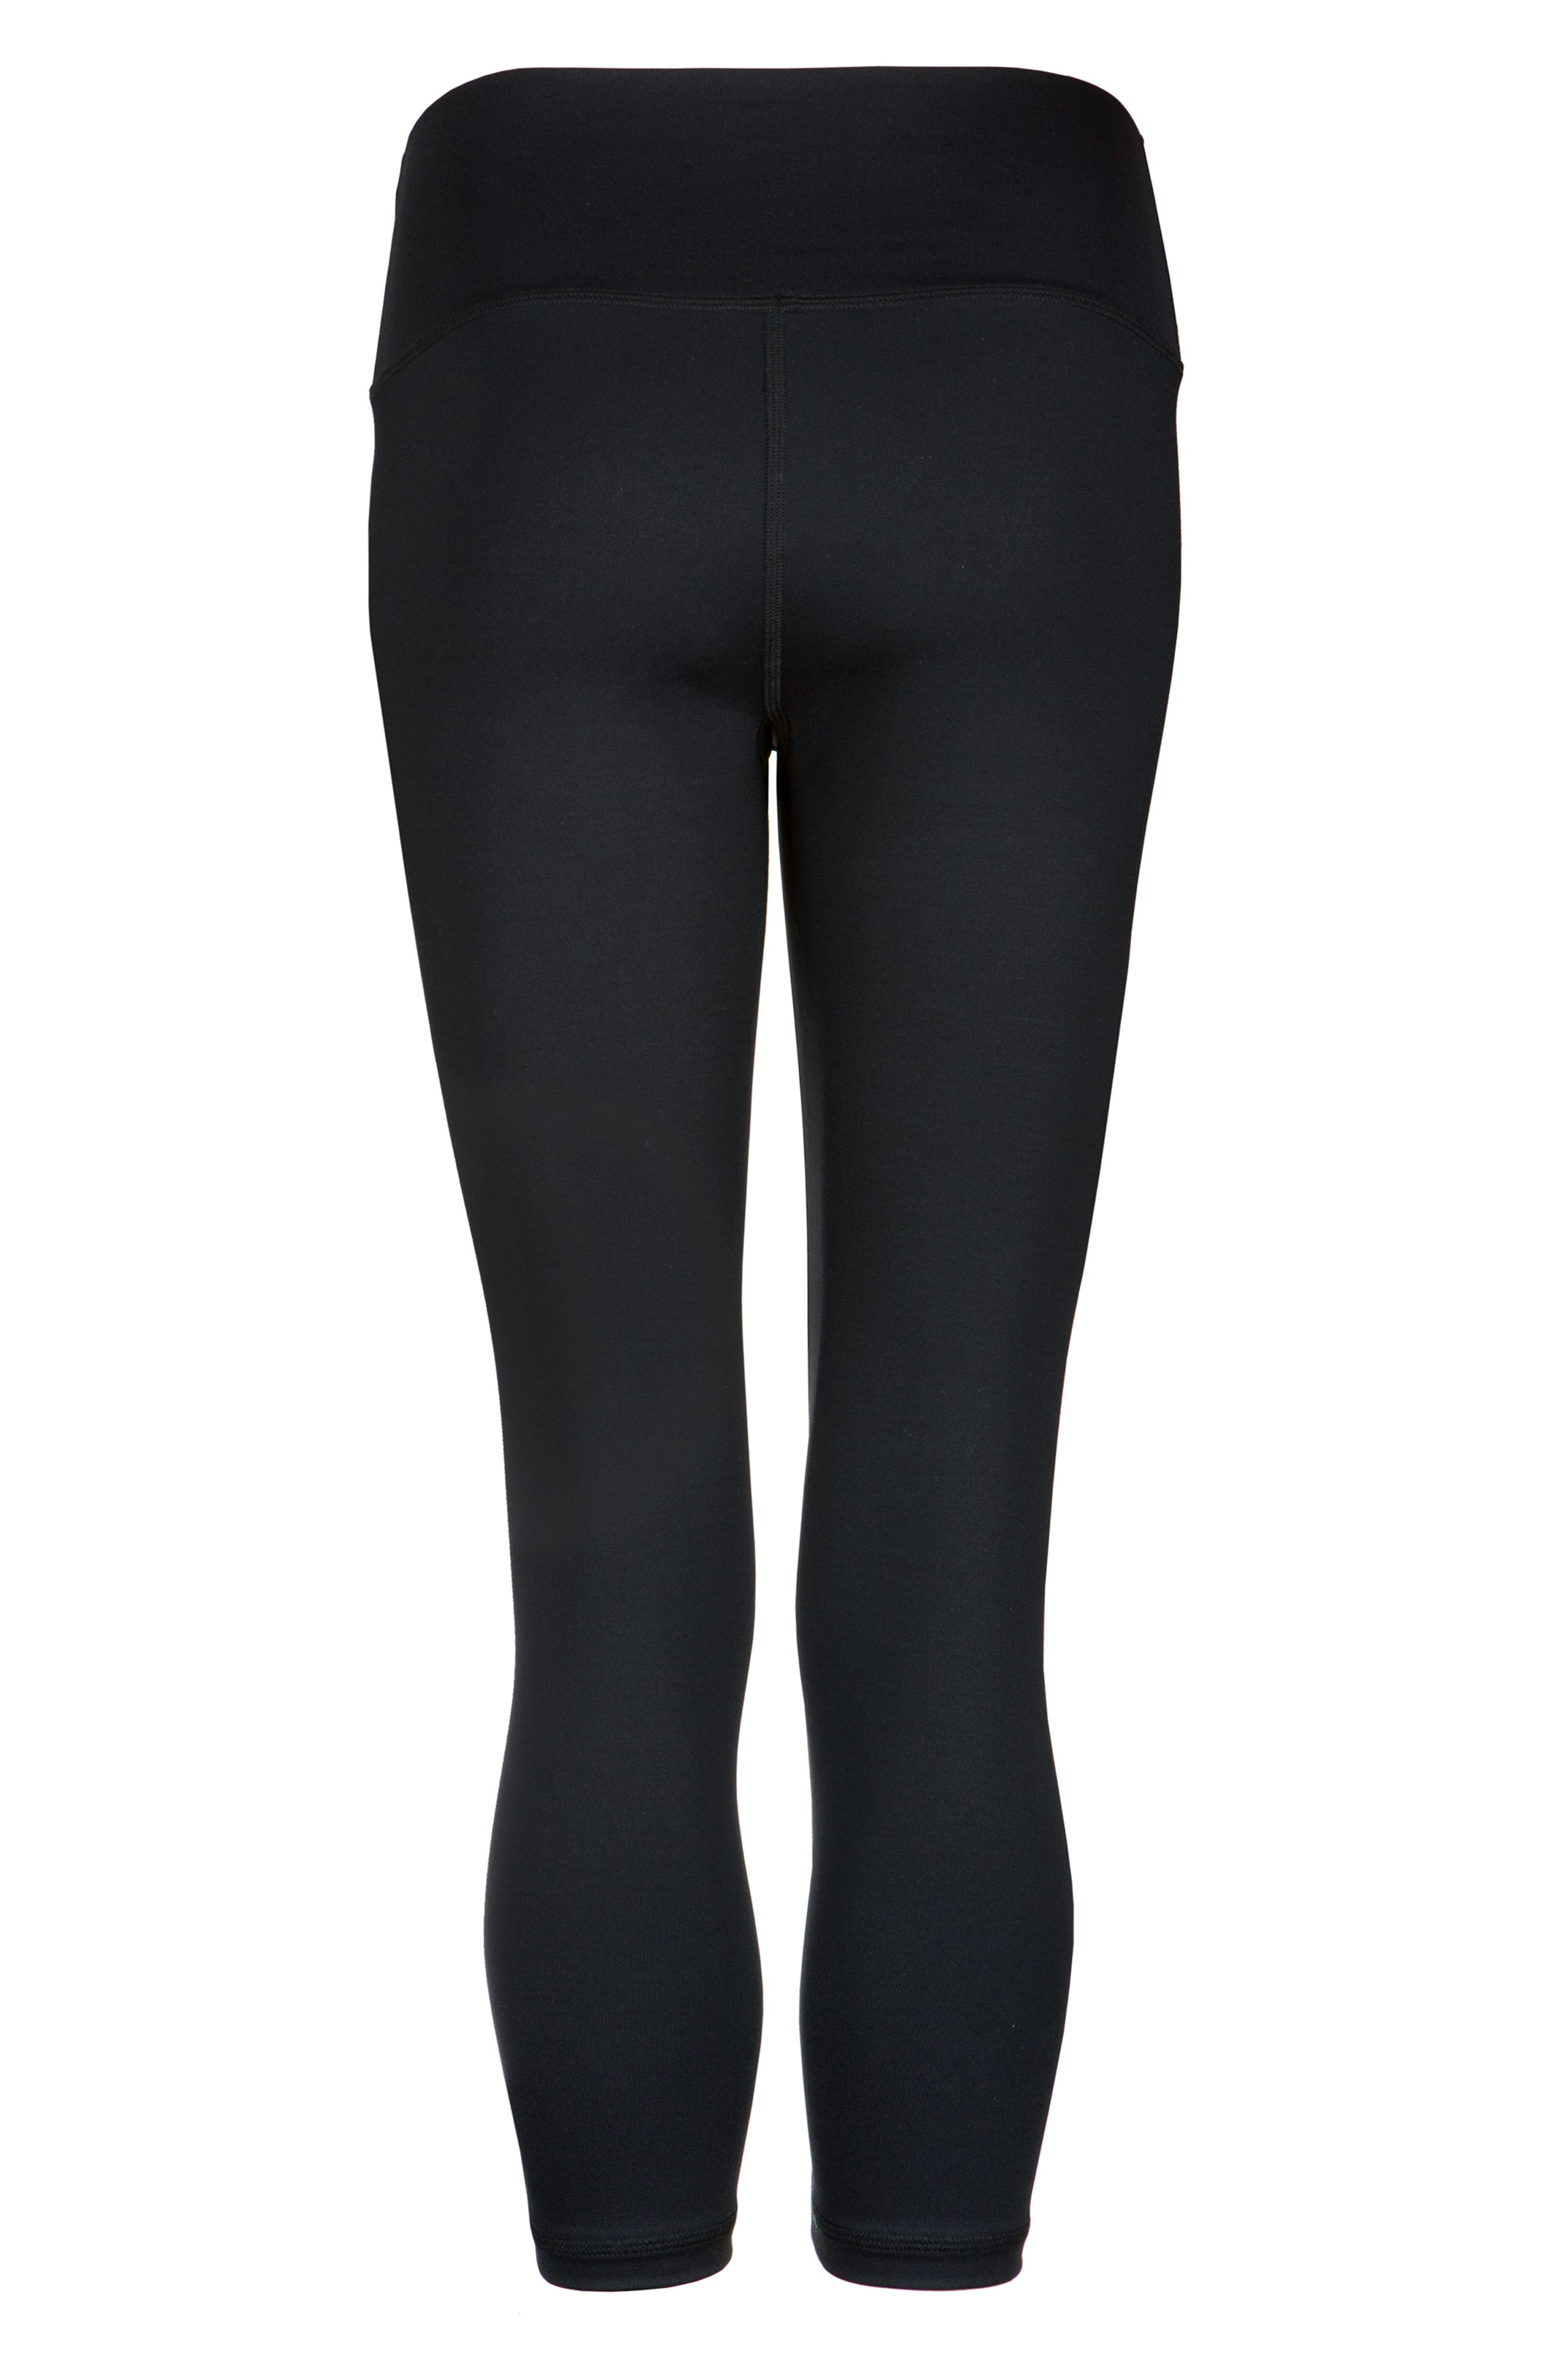 LIVELY, The Active High Waist Crop Leggings, Alternate thumbnail 2, color, JET BLACK